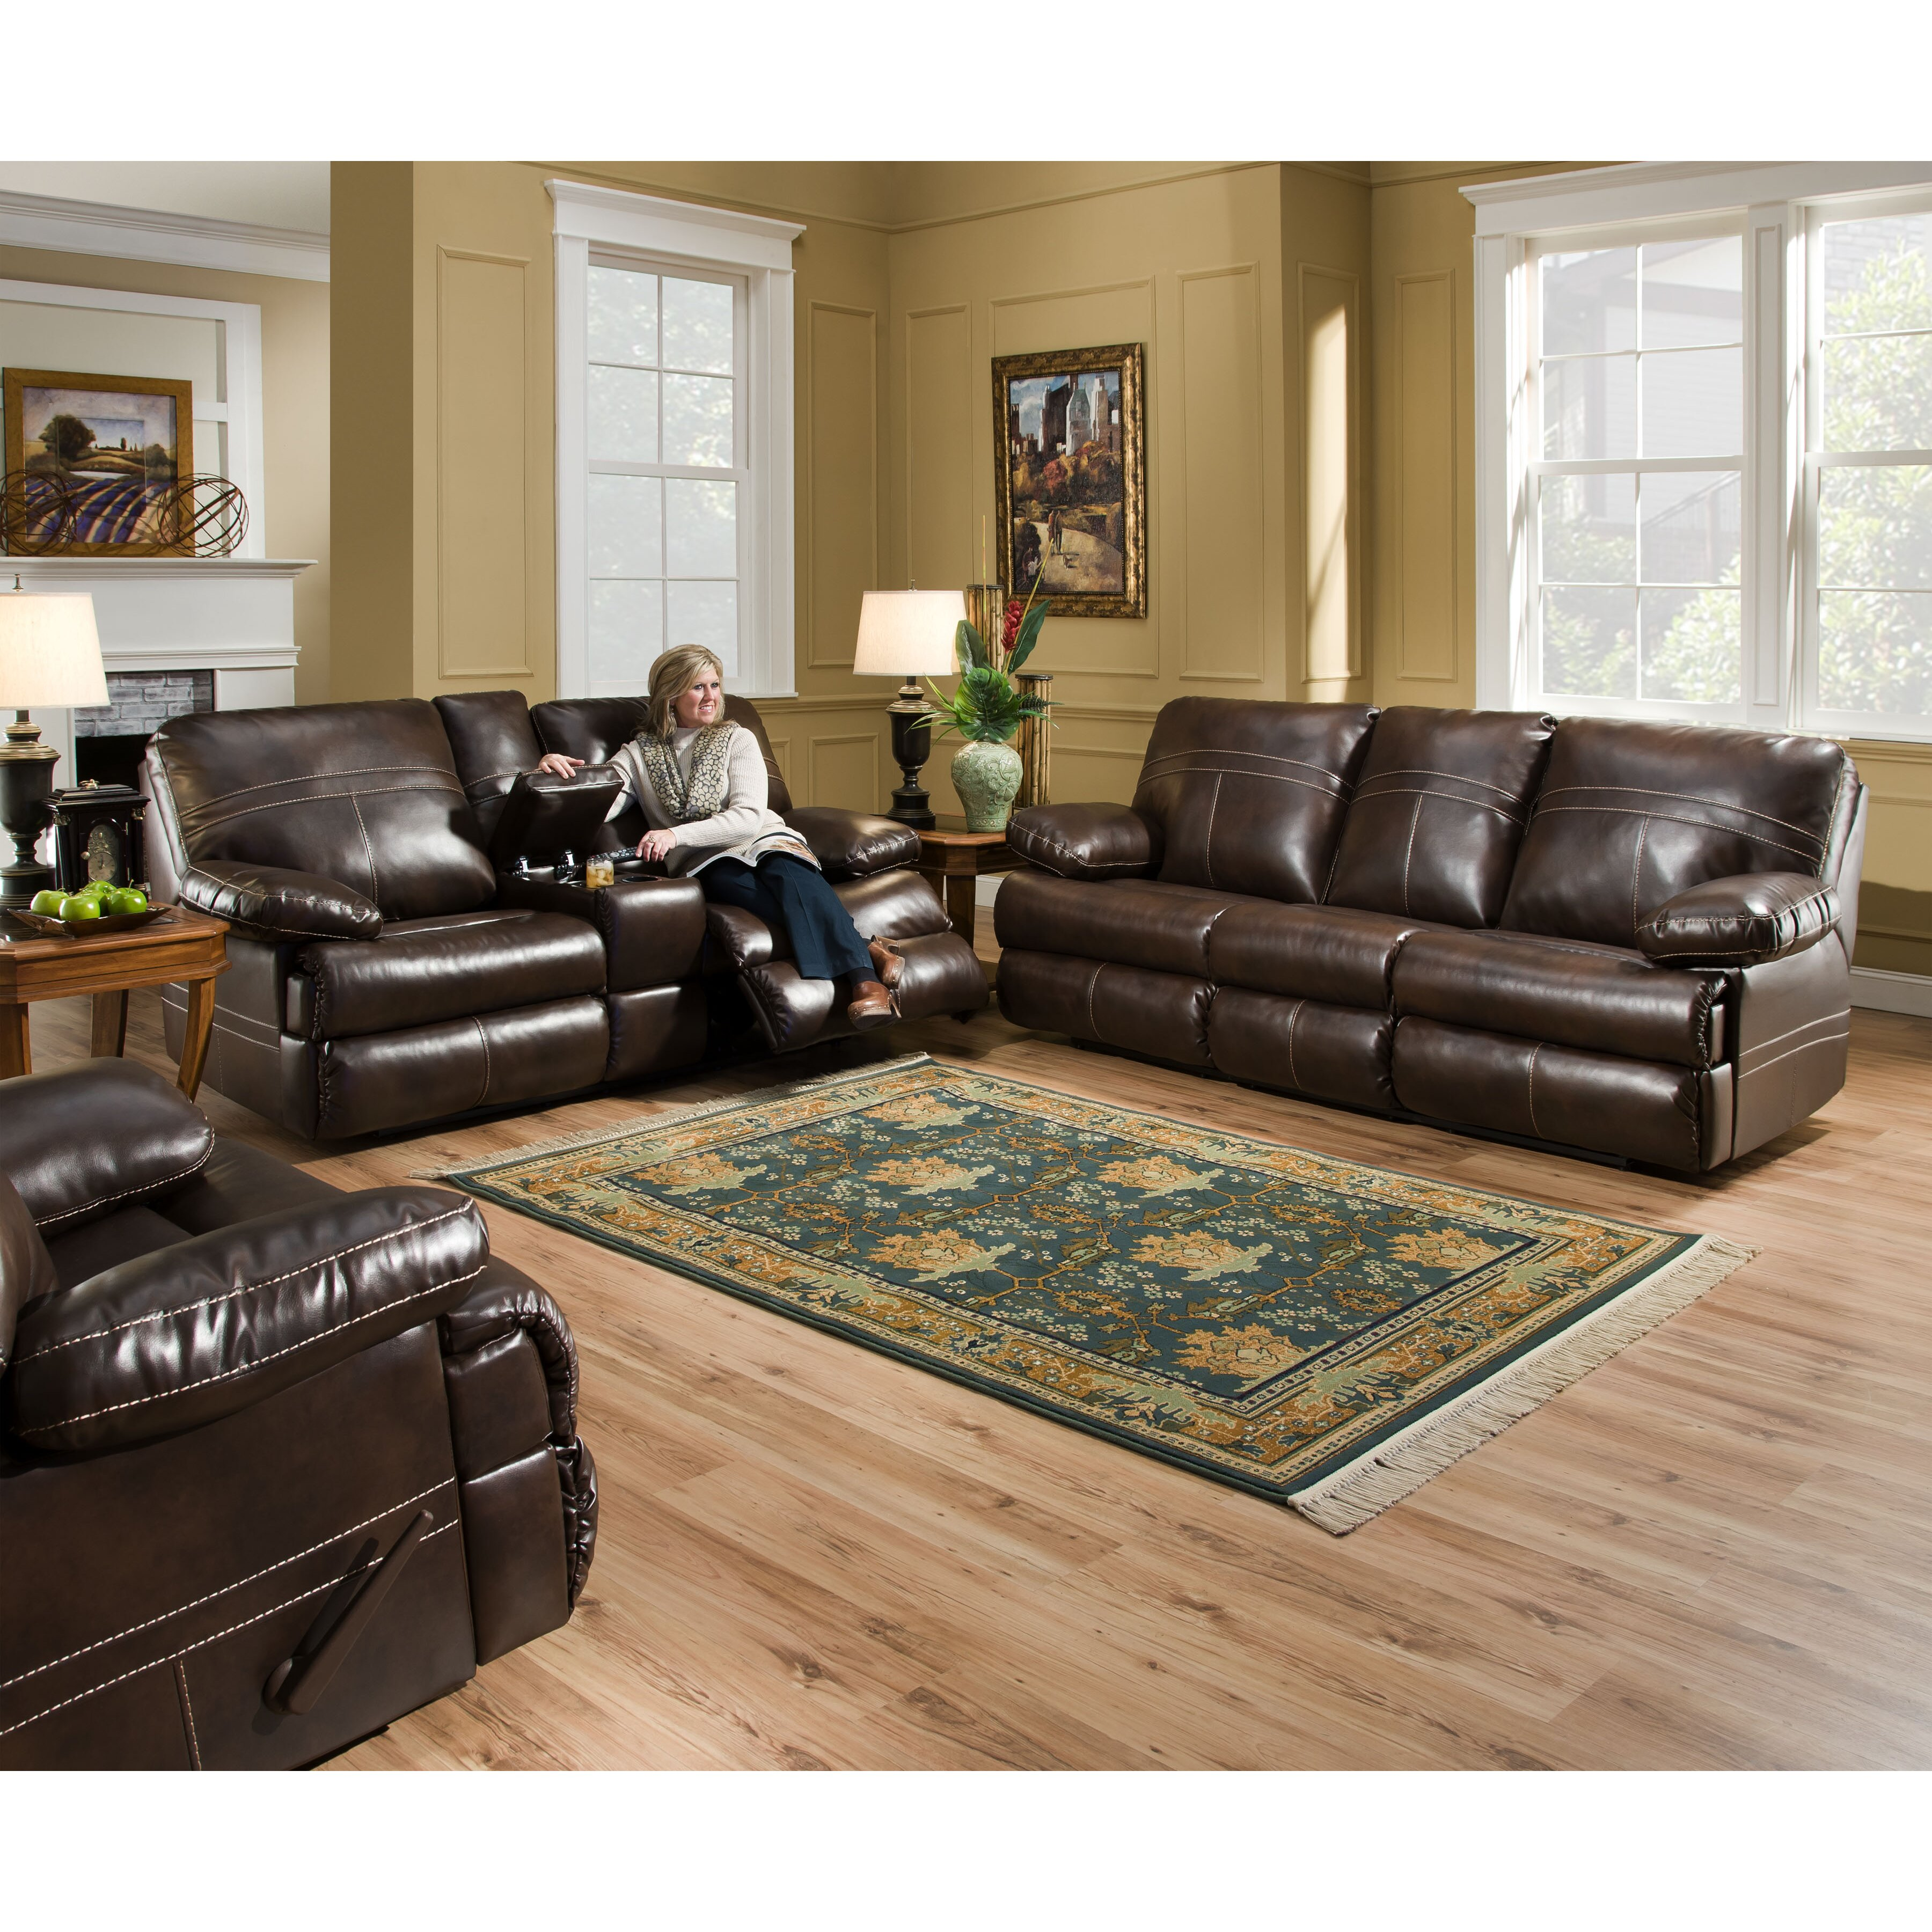 Quick view simmons upholstery obryan reclining living room collection